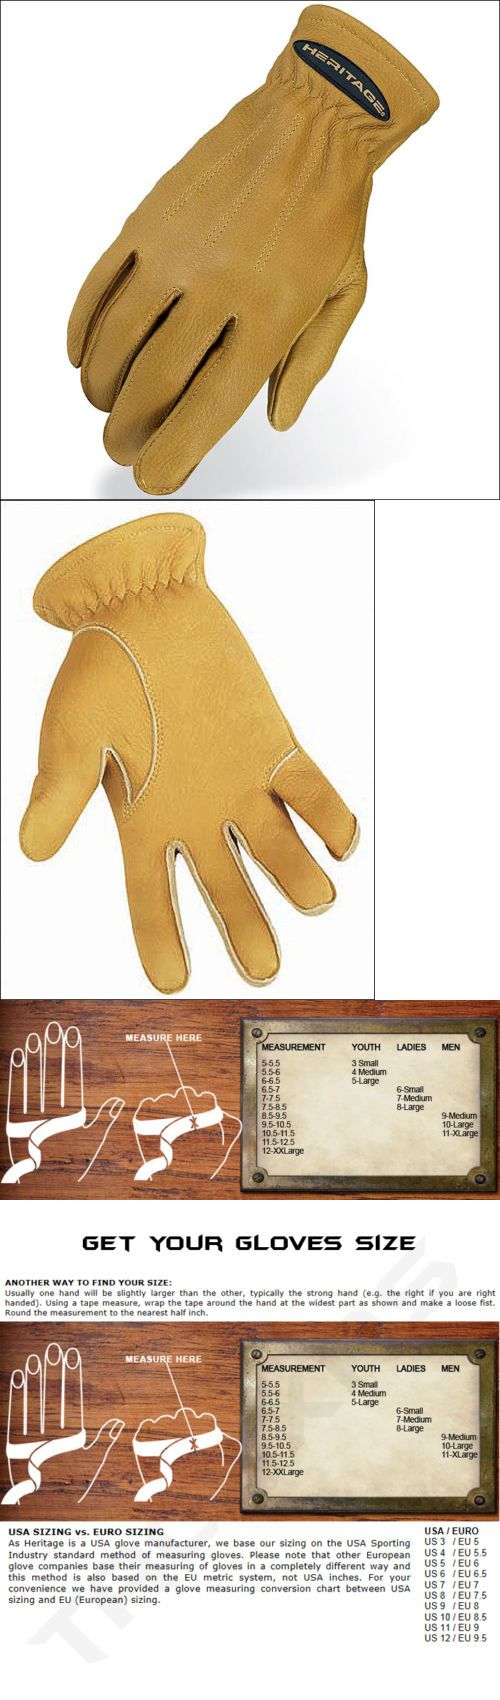 Leather work gloves ebay - Riding Gloves 95104 7 Size Heritage Sheepskin Trail Natural Tan Riding Gloves Horse Equestrian